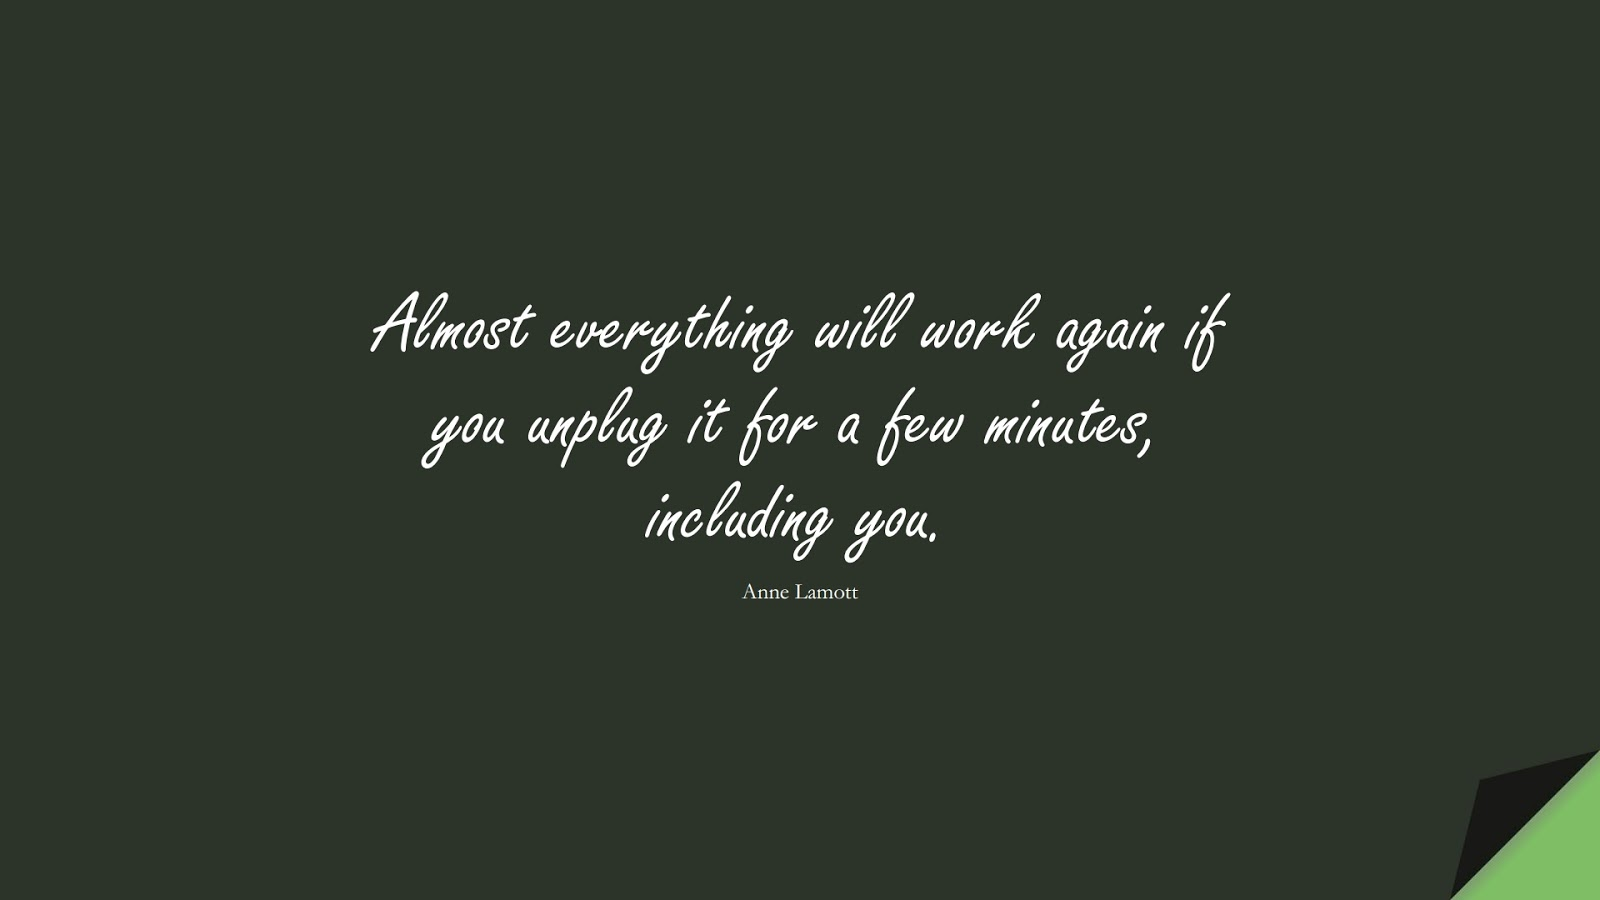 Almost everything will work again if you unplug it for a few minutes, including you. (Anne Lamott);  #StressQuotes